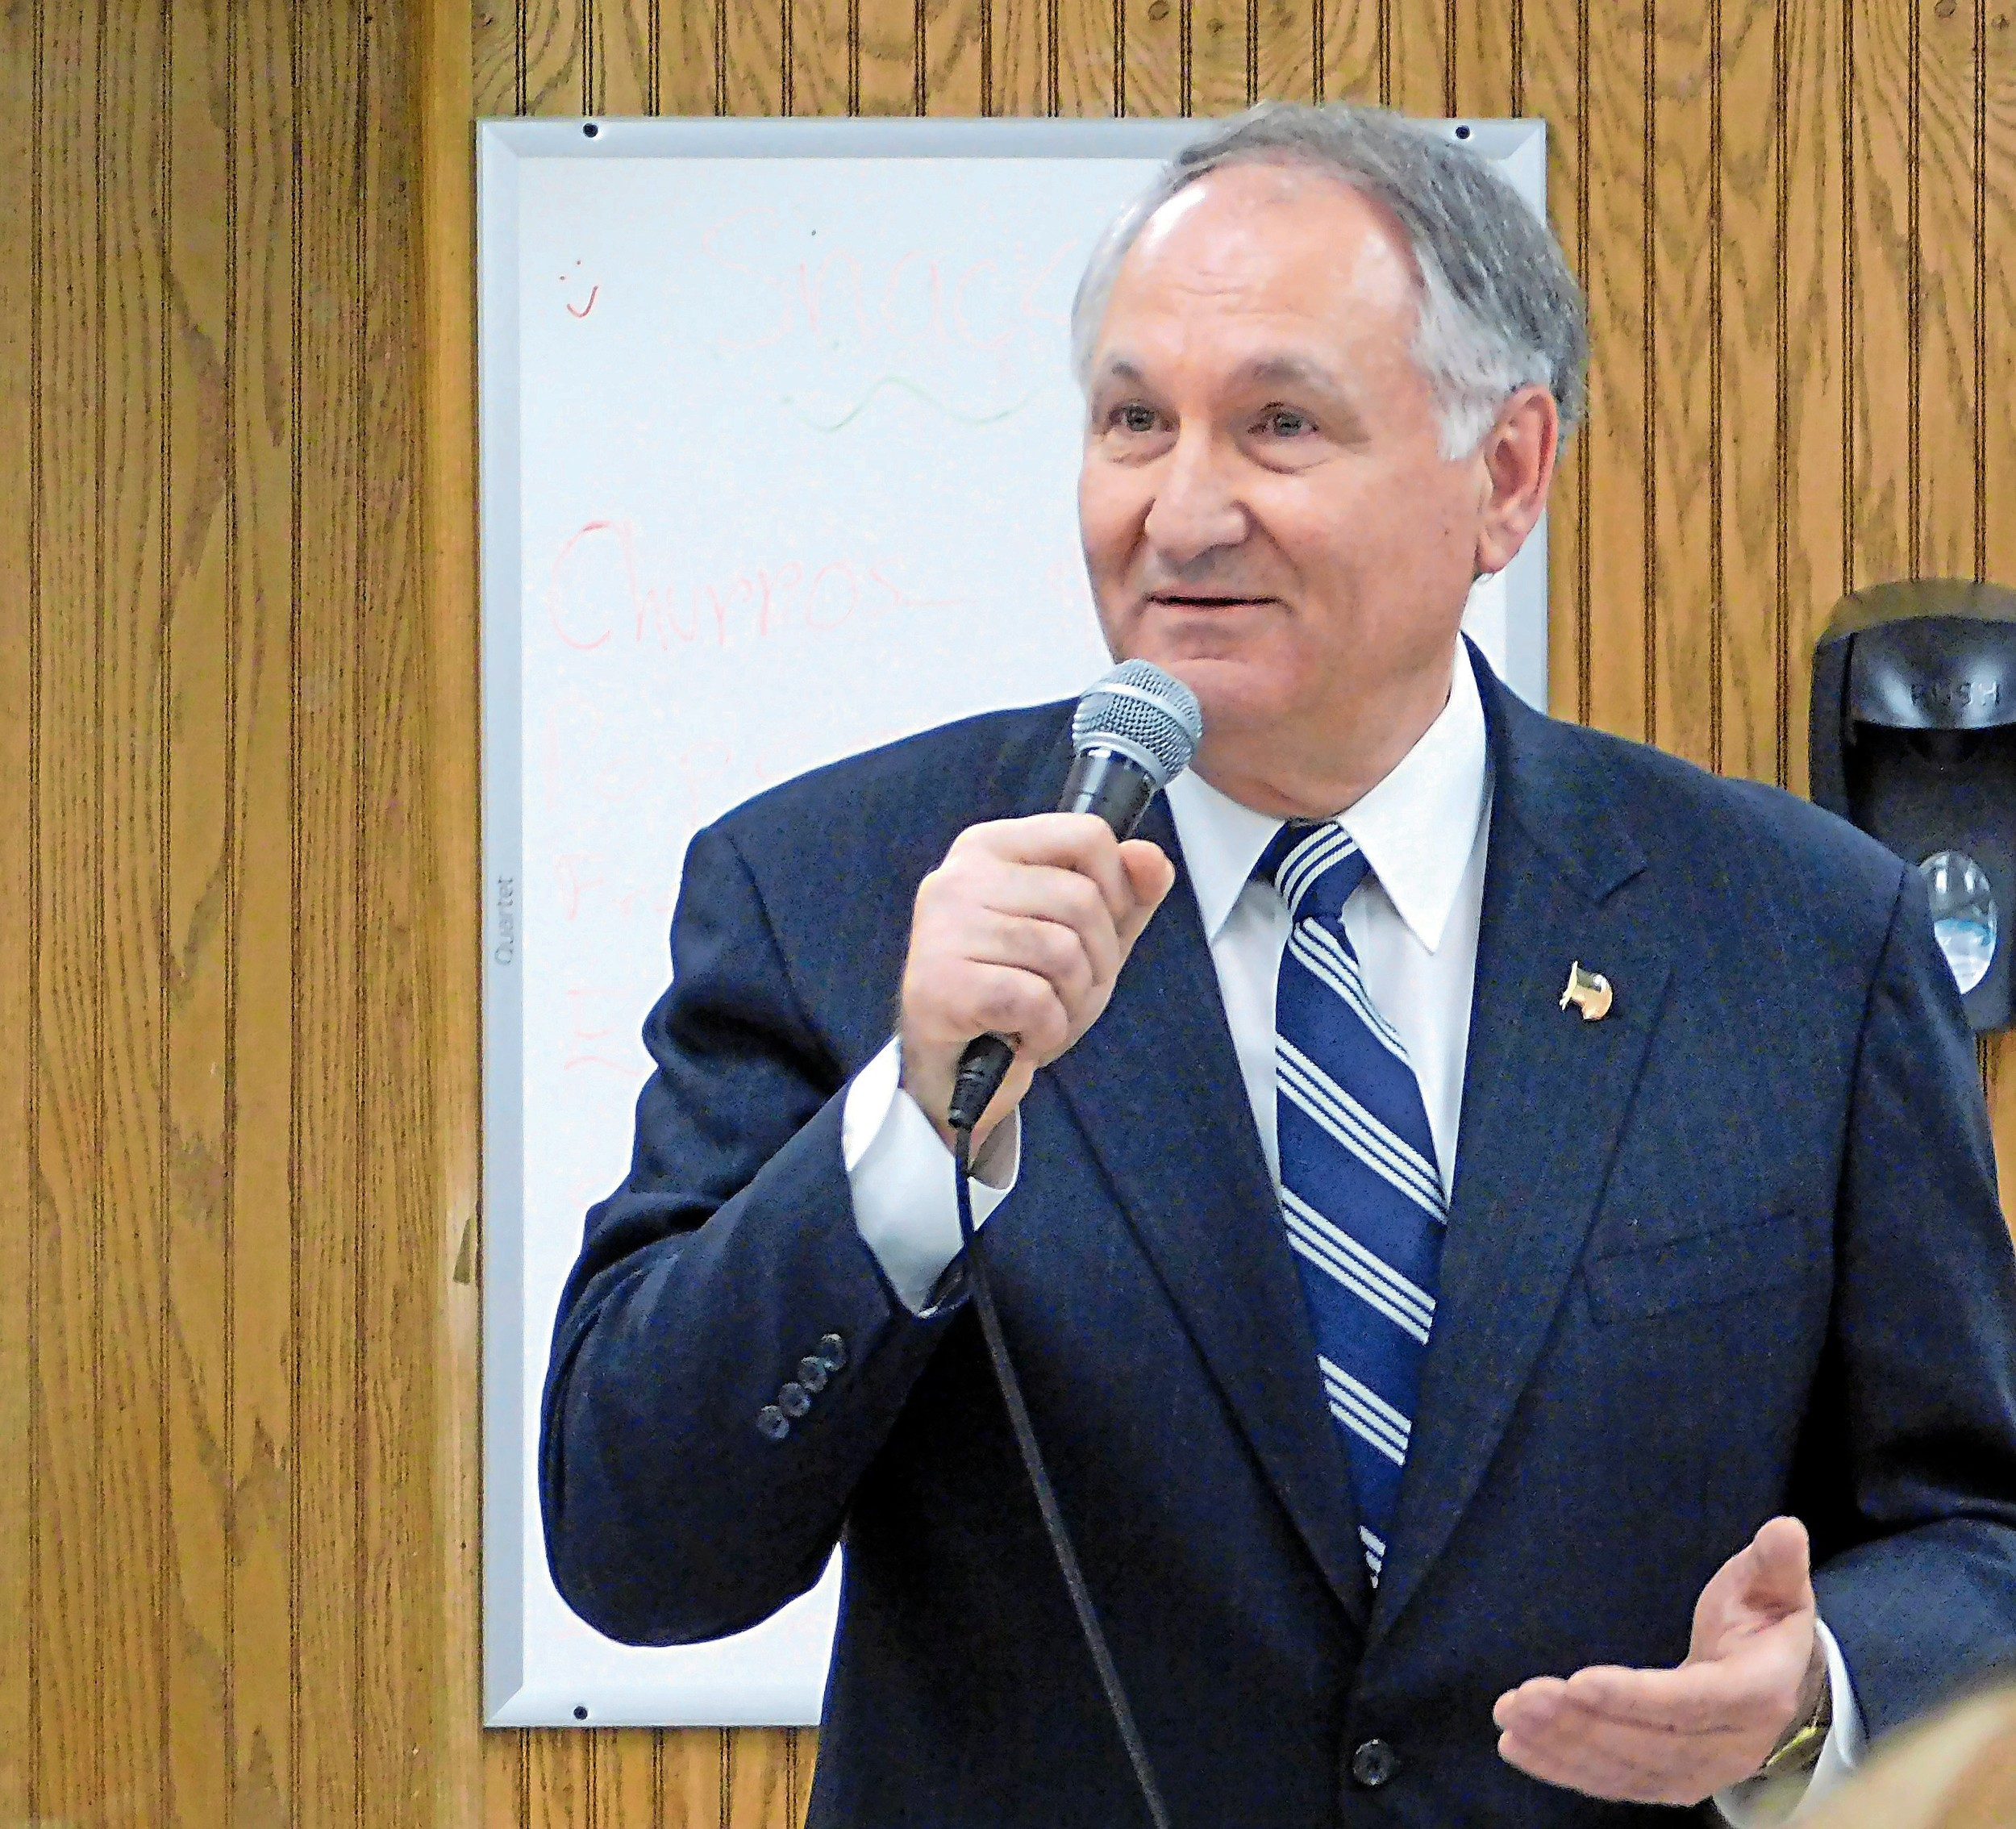 George Maragos, the county comptroller who is also running as a Democrat for county executive, announced his anti-corruption agenda on Wednesday.